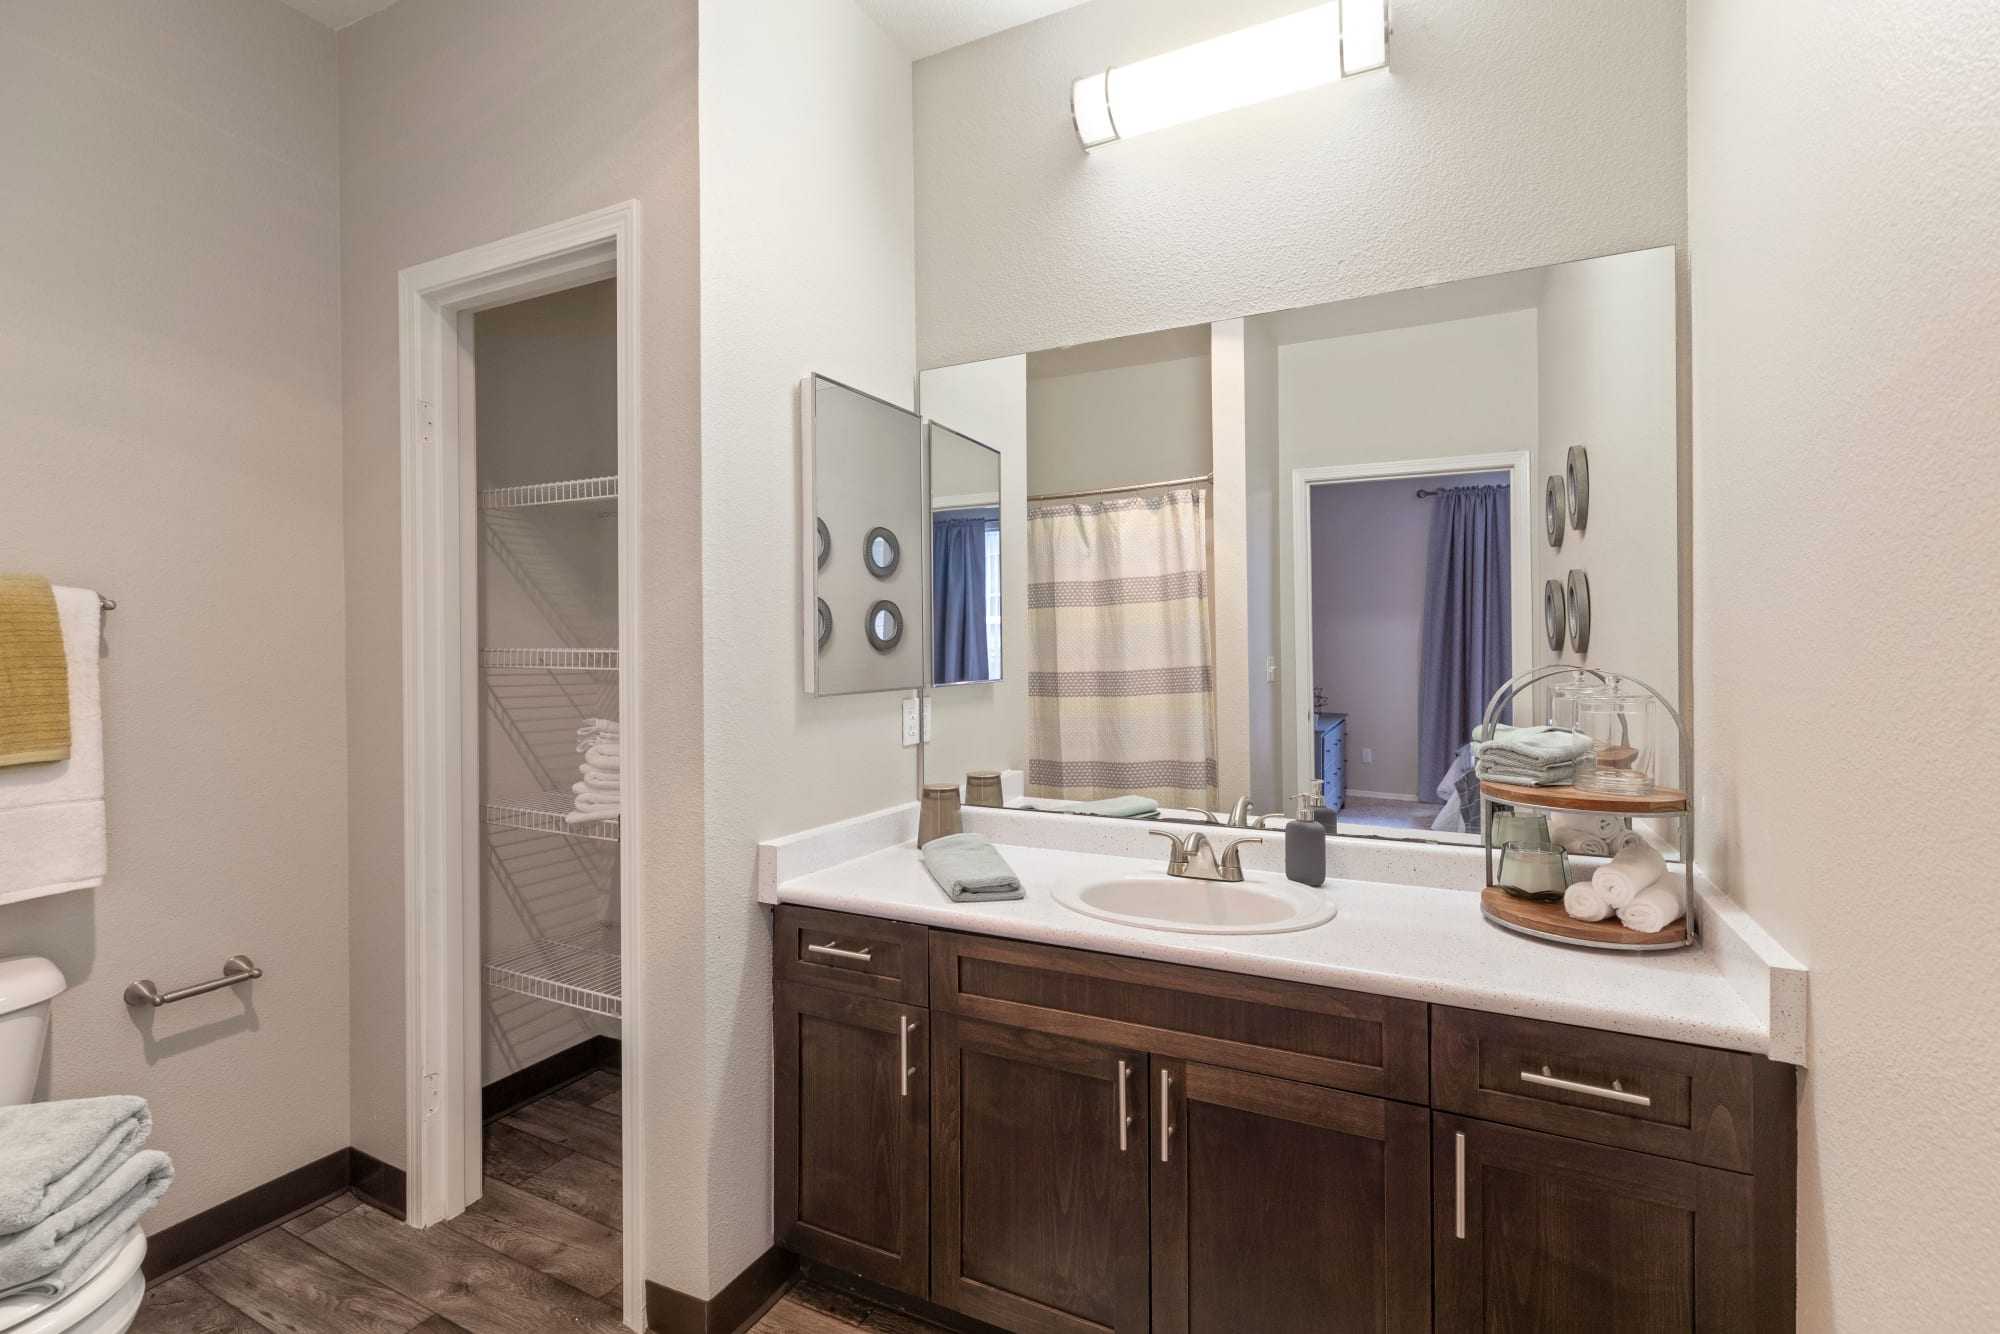 Master Bathroom at HighGrove Apartments in Everett, WA